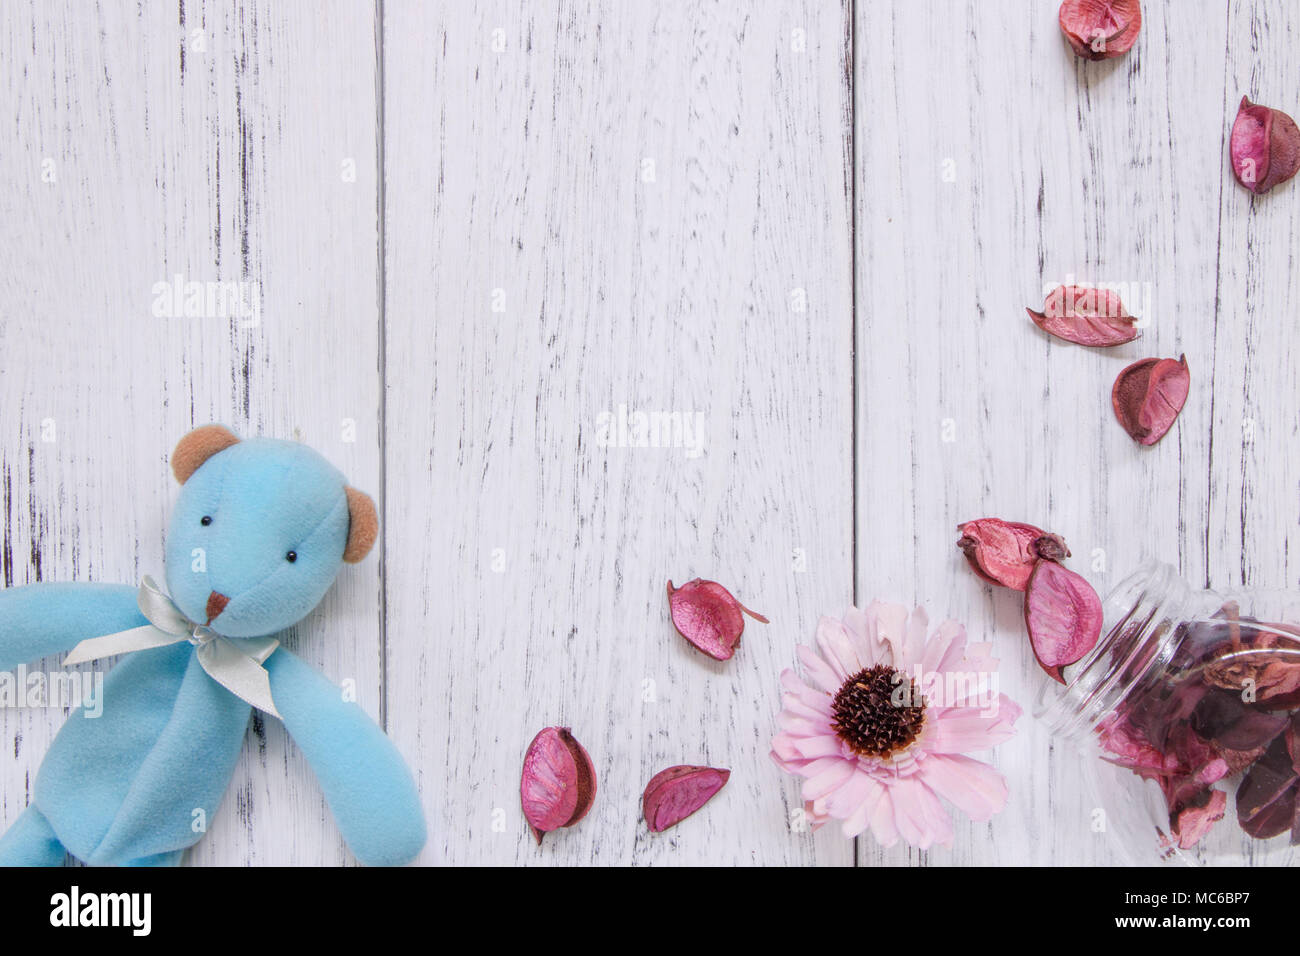 f5b4939aee0af Flat lay stock photography vintage white painted wood floor purple flower  petals and glass bottle blue bear doll